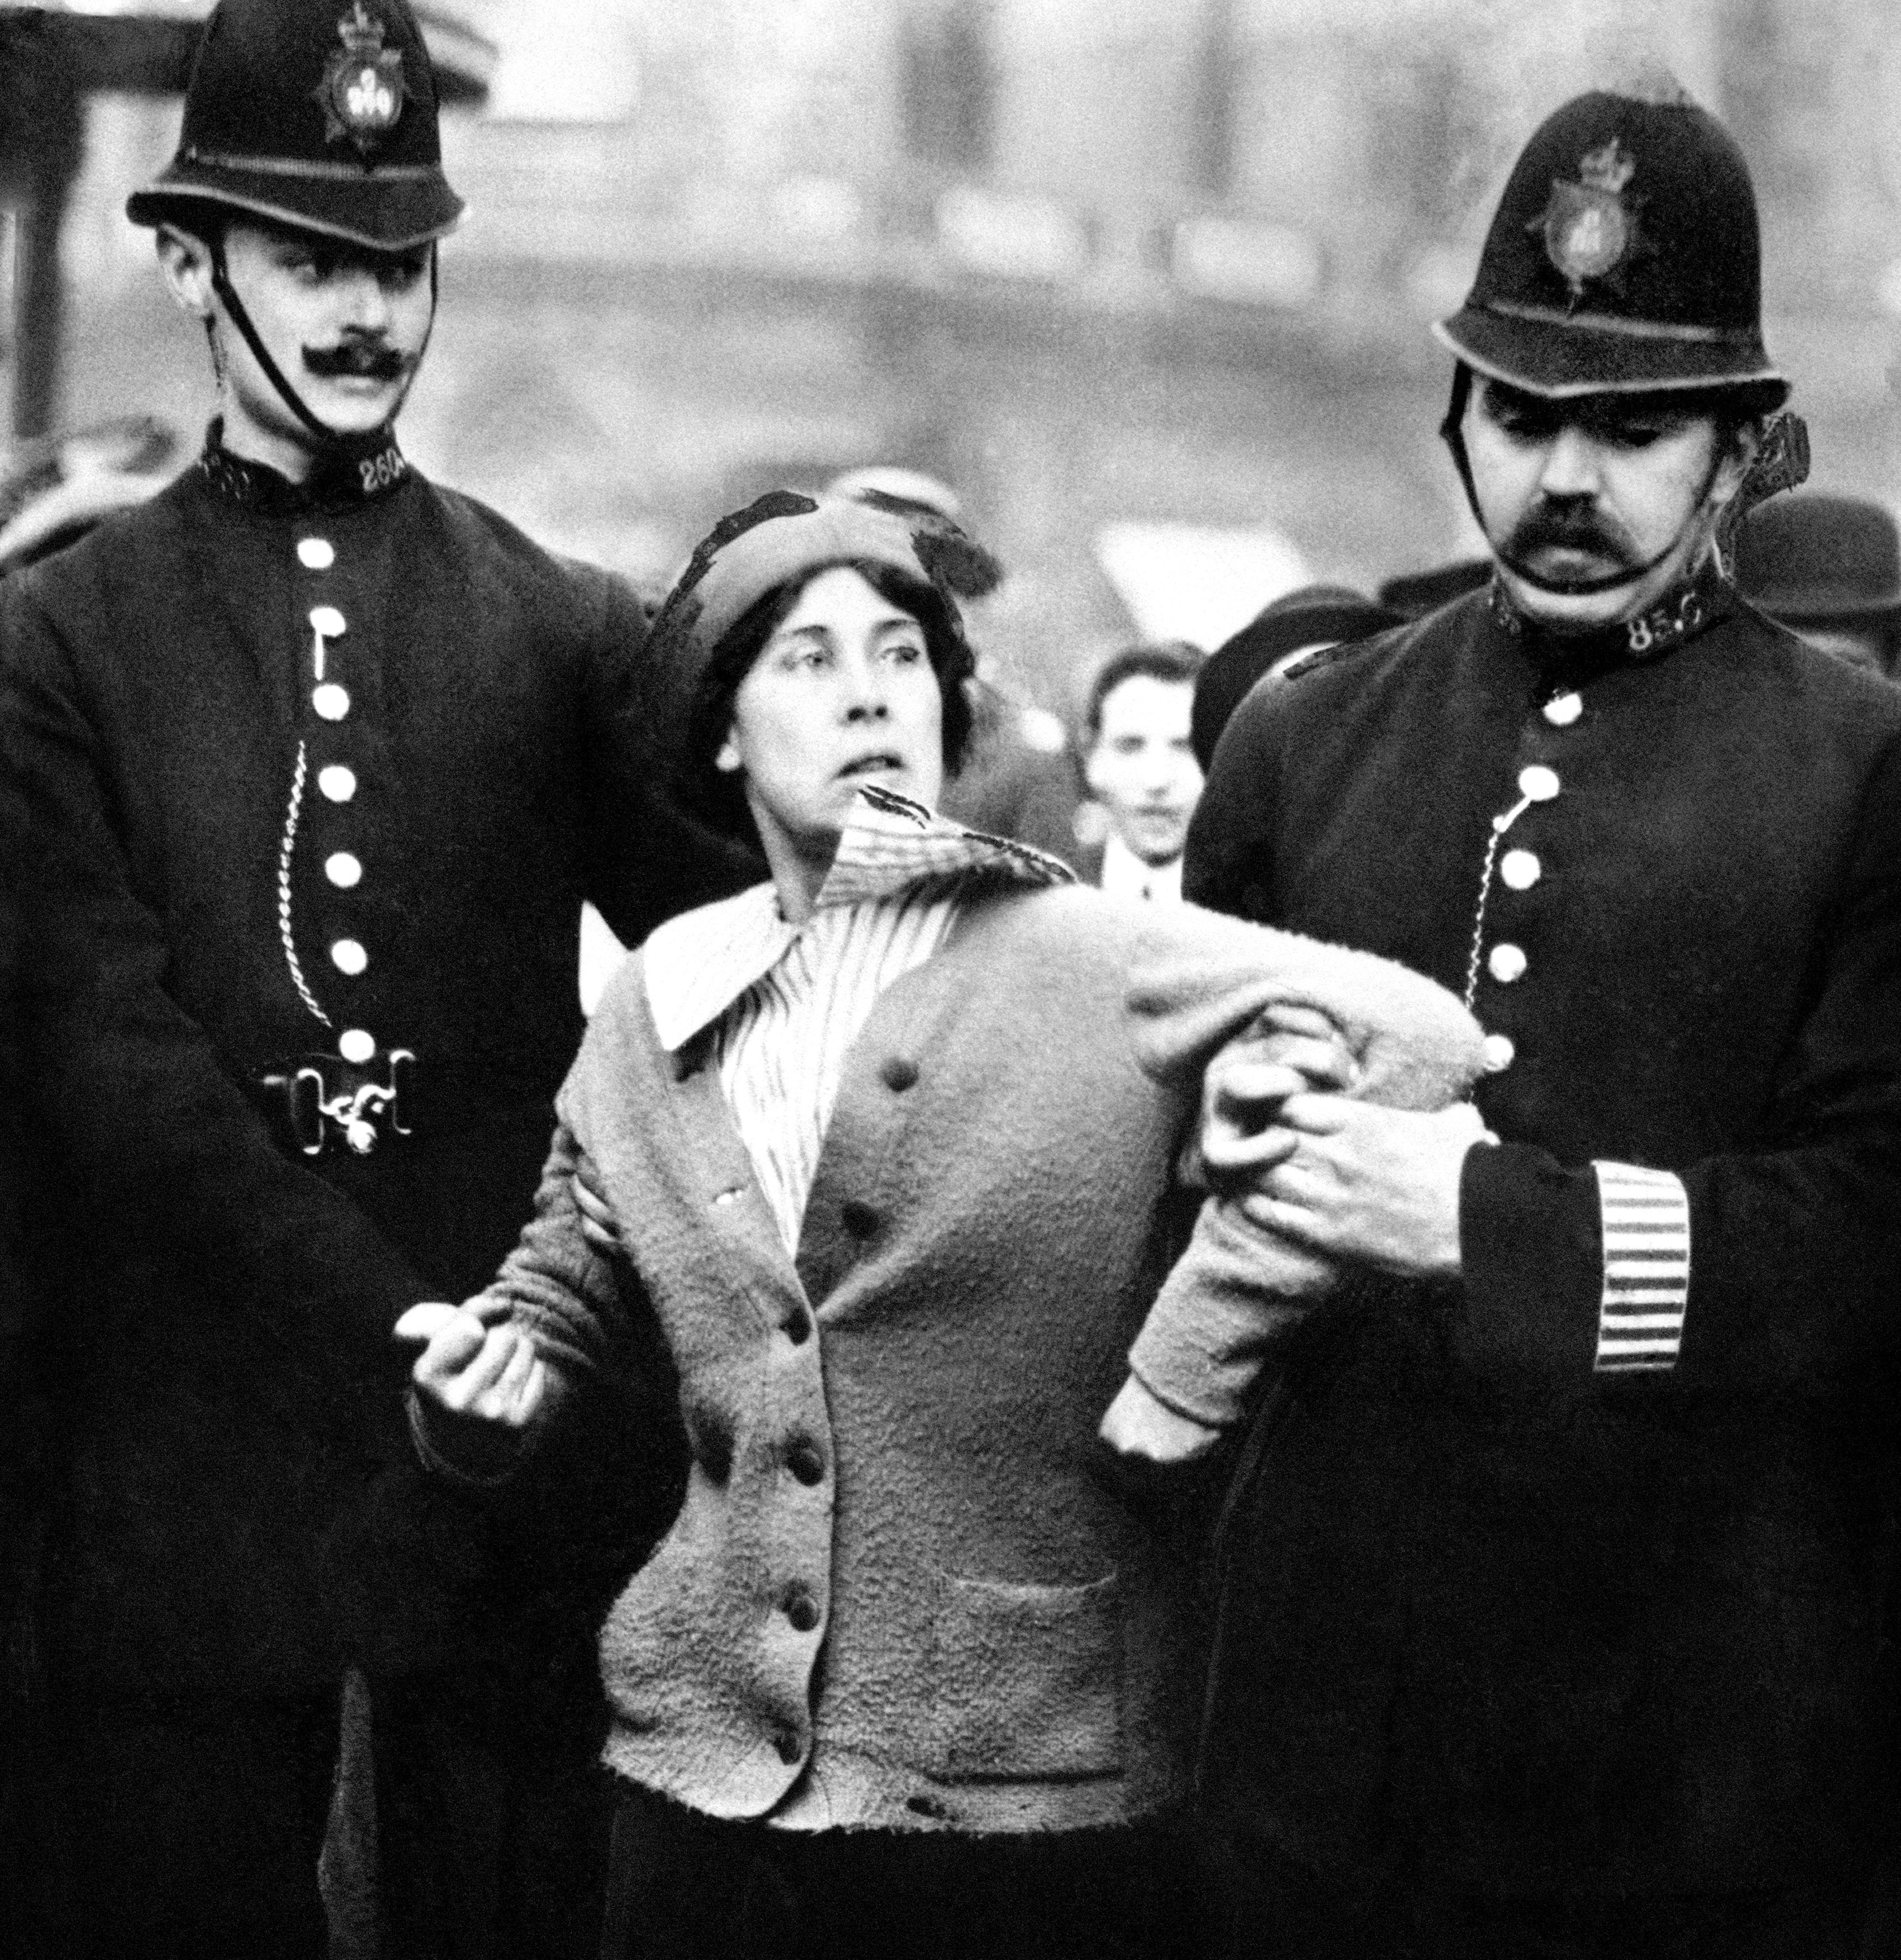 A suffragette being arrested by police officers in 1914 (PA)